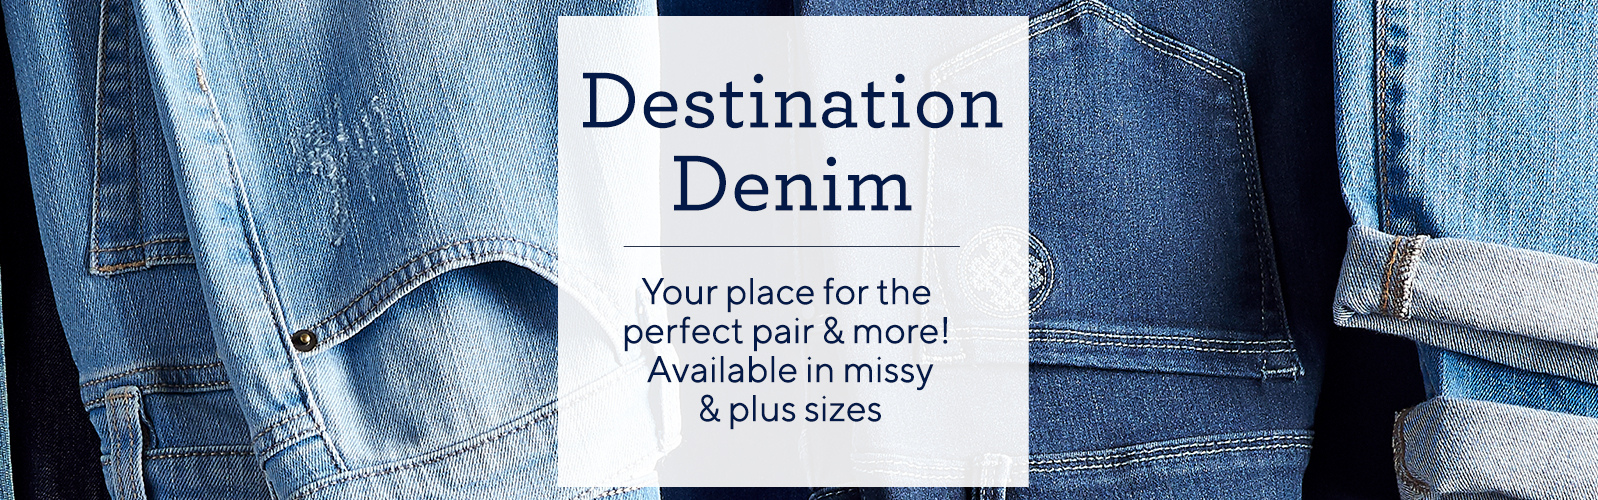 681a8f7a9deb8 Denim Shop - Women s Denim   Jeans — QVC.com